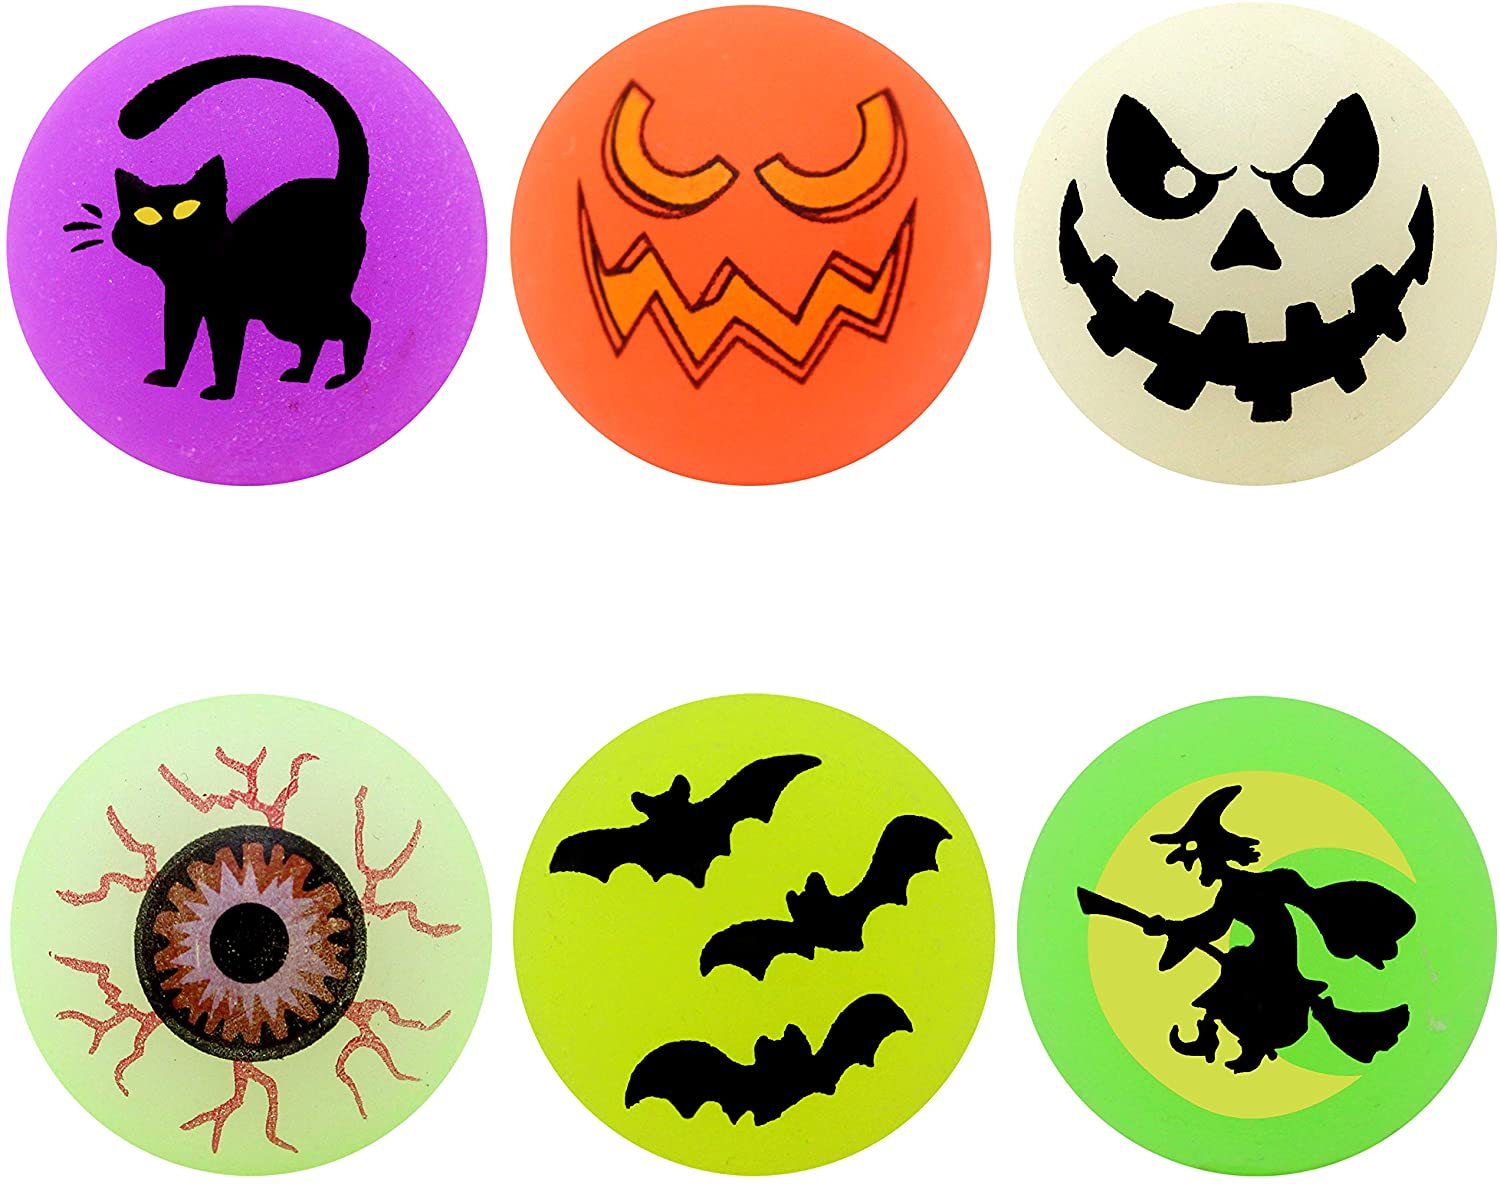 glow in the dark bouncy balls, bouncy balls,bouncing ball,rubber ball,jumping ball,children toy,toy, toy balls